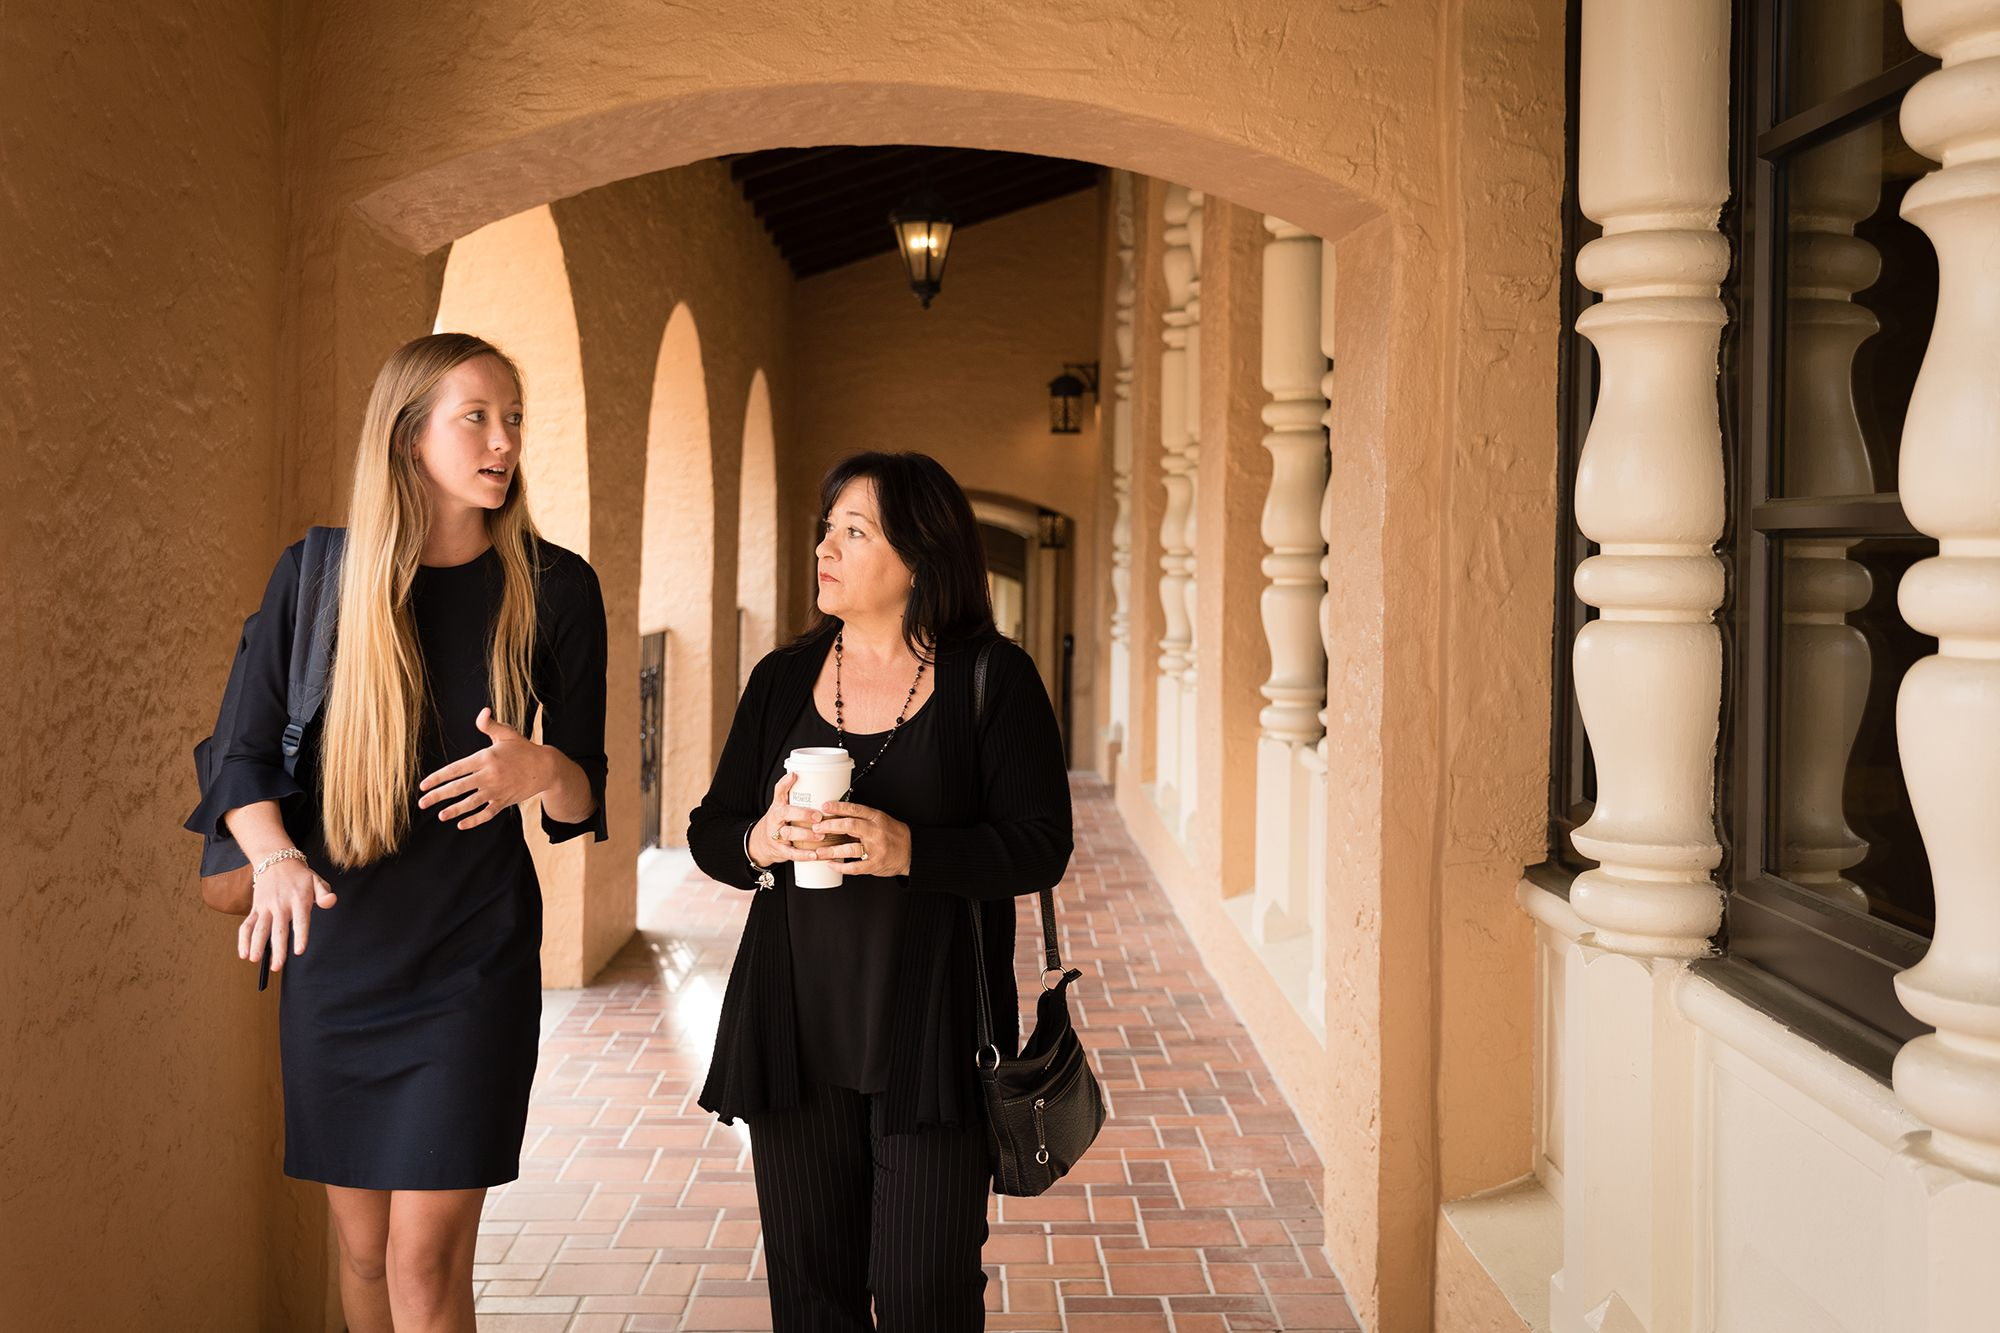 A professor and student walking together down the arched hallways of Rollins College.